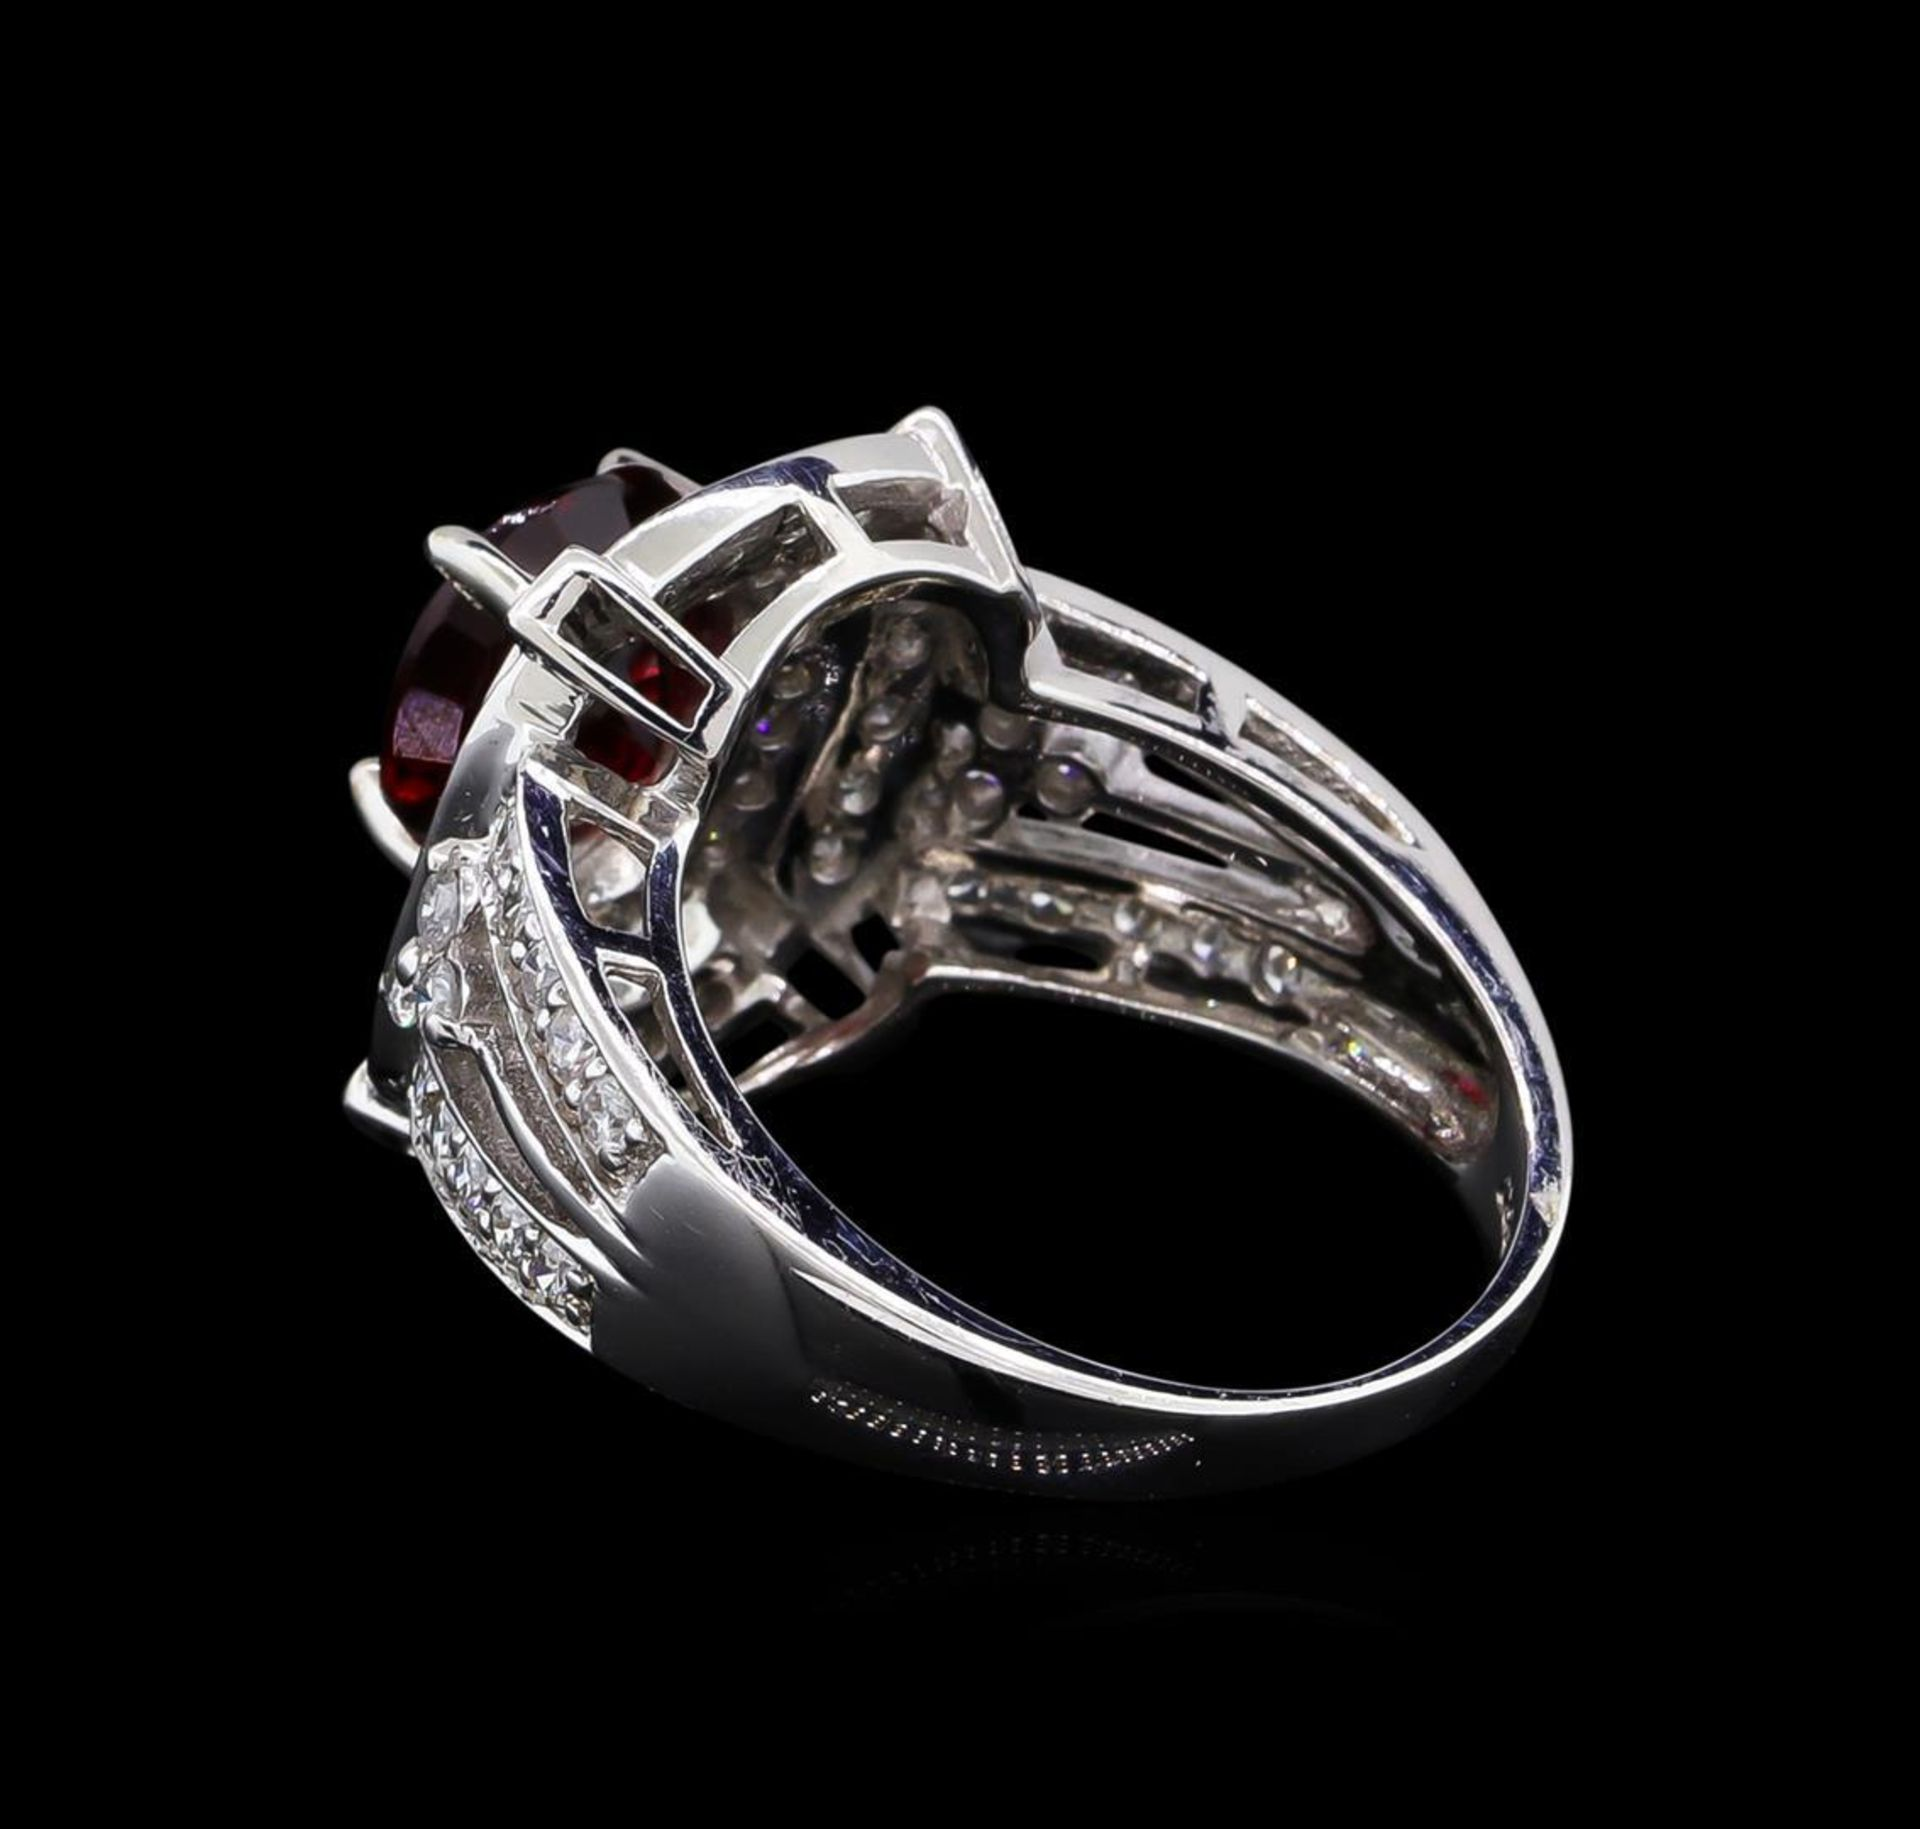 14KT White Gold 2.67 ctw Spinel and Diamond Ring - Image 3 of 5